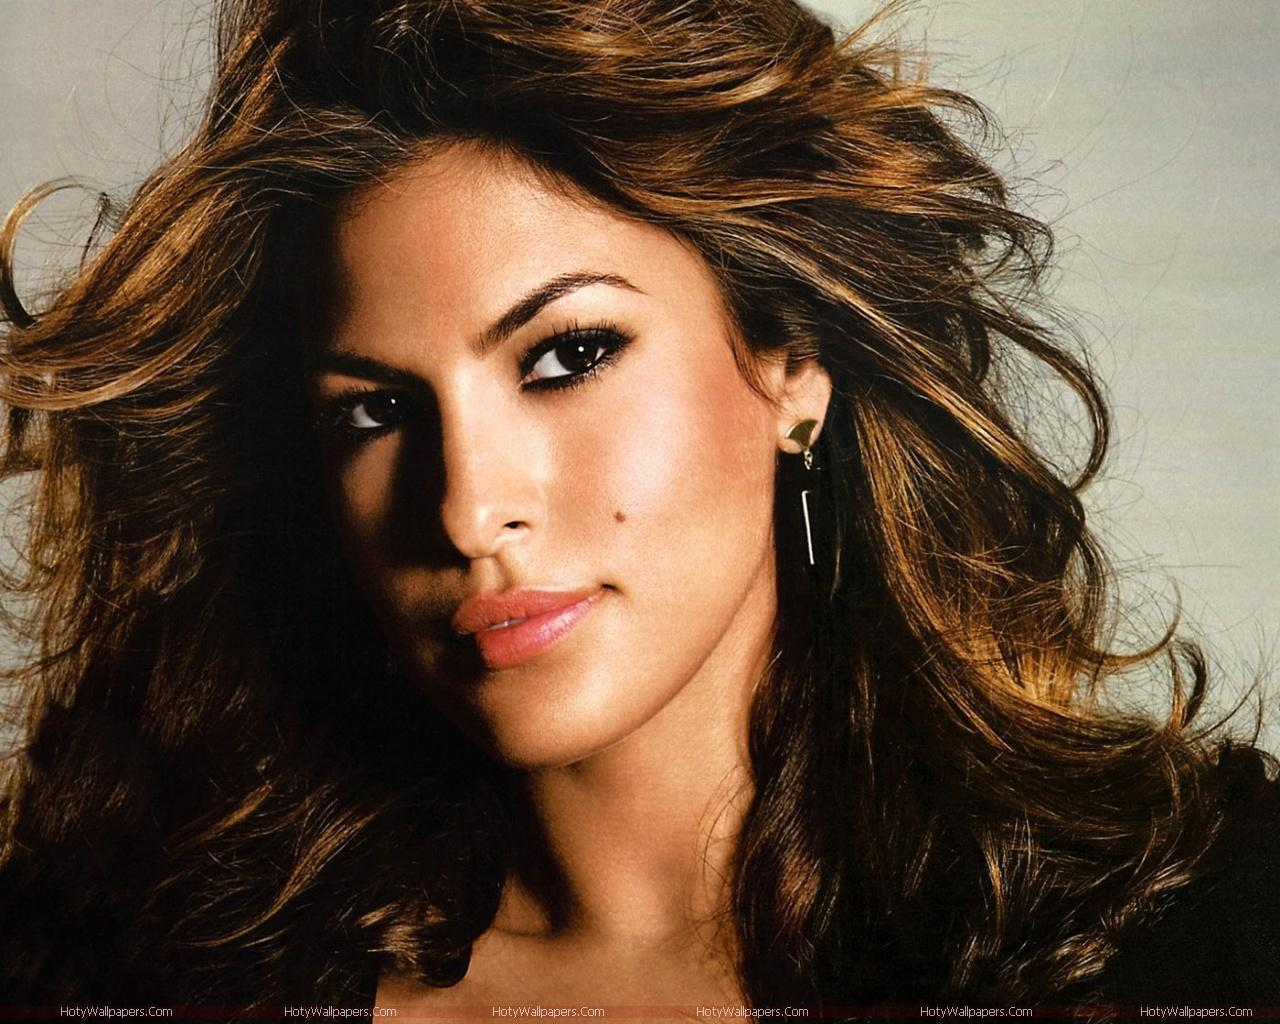 http://3.bp.blogspot.com/-Z0Vvdt2PfFw/TlepH-tmv-I/AAAAAAAAJ0g/b_SVM48Q3zc/s1600/hollywood-actress-Eva-Mendes-hd-wallpaper.jpg